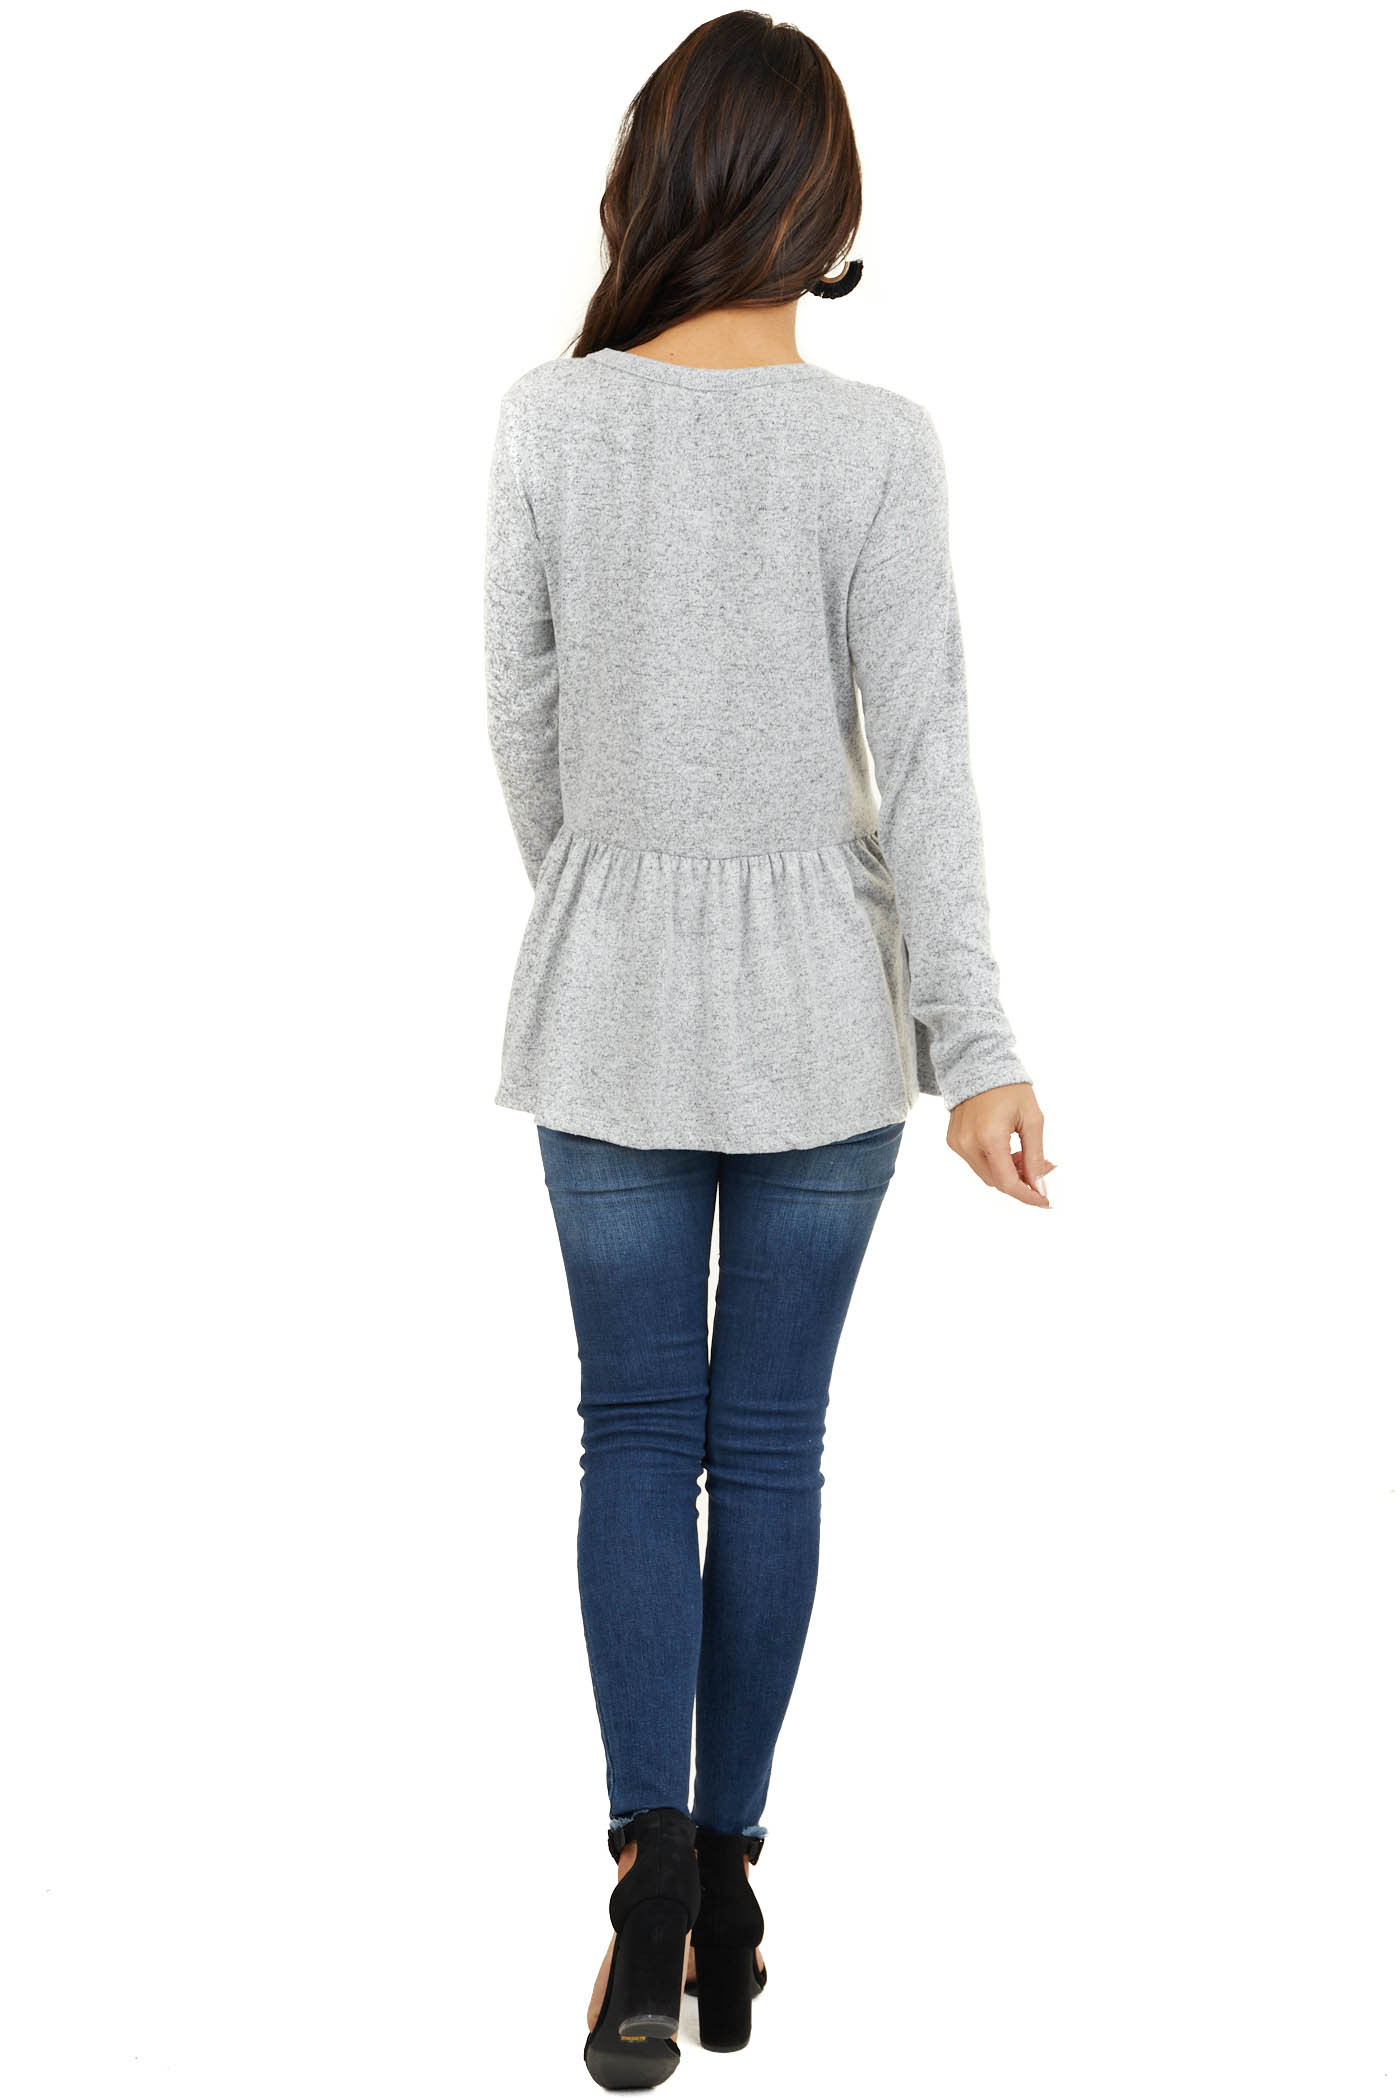 Heathered Grey Soft Knit Peplum Top with Long Sleeves